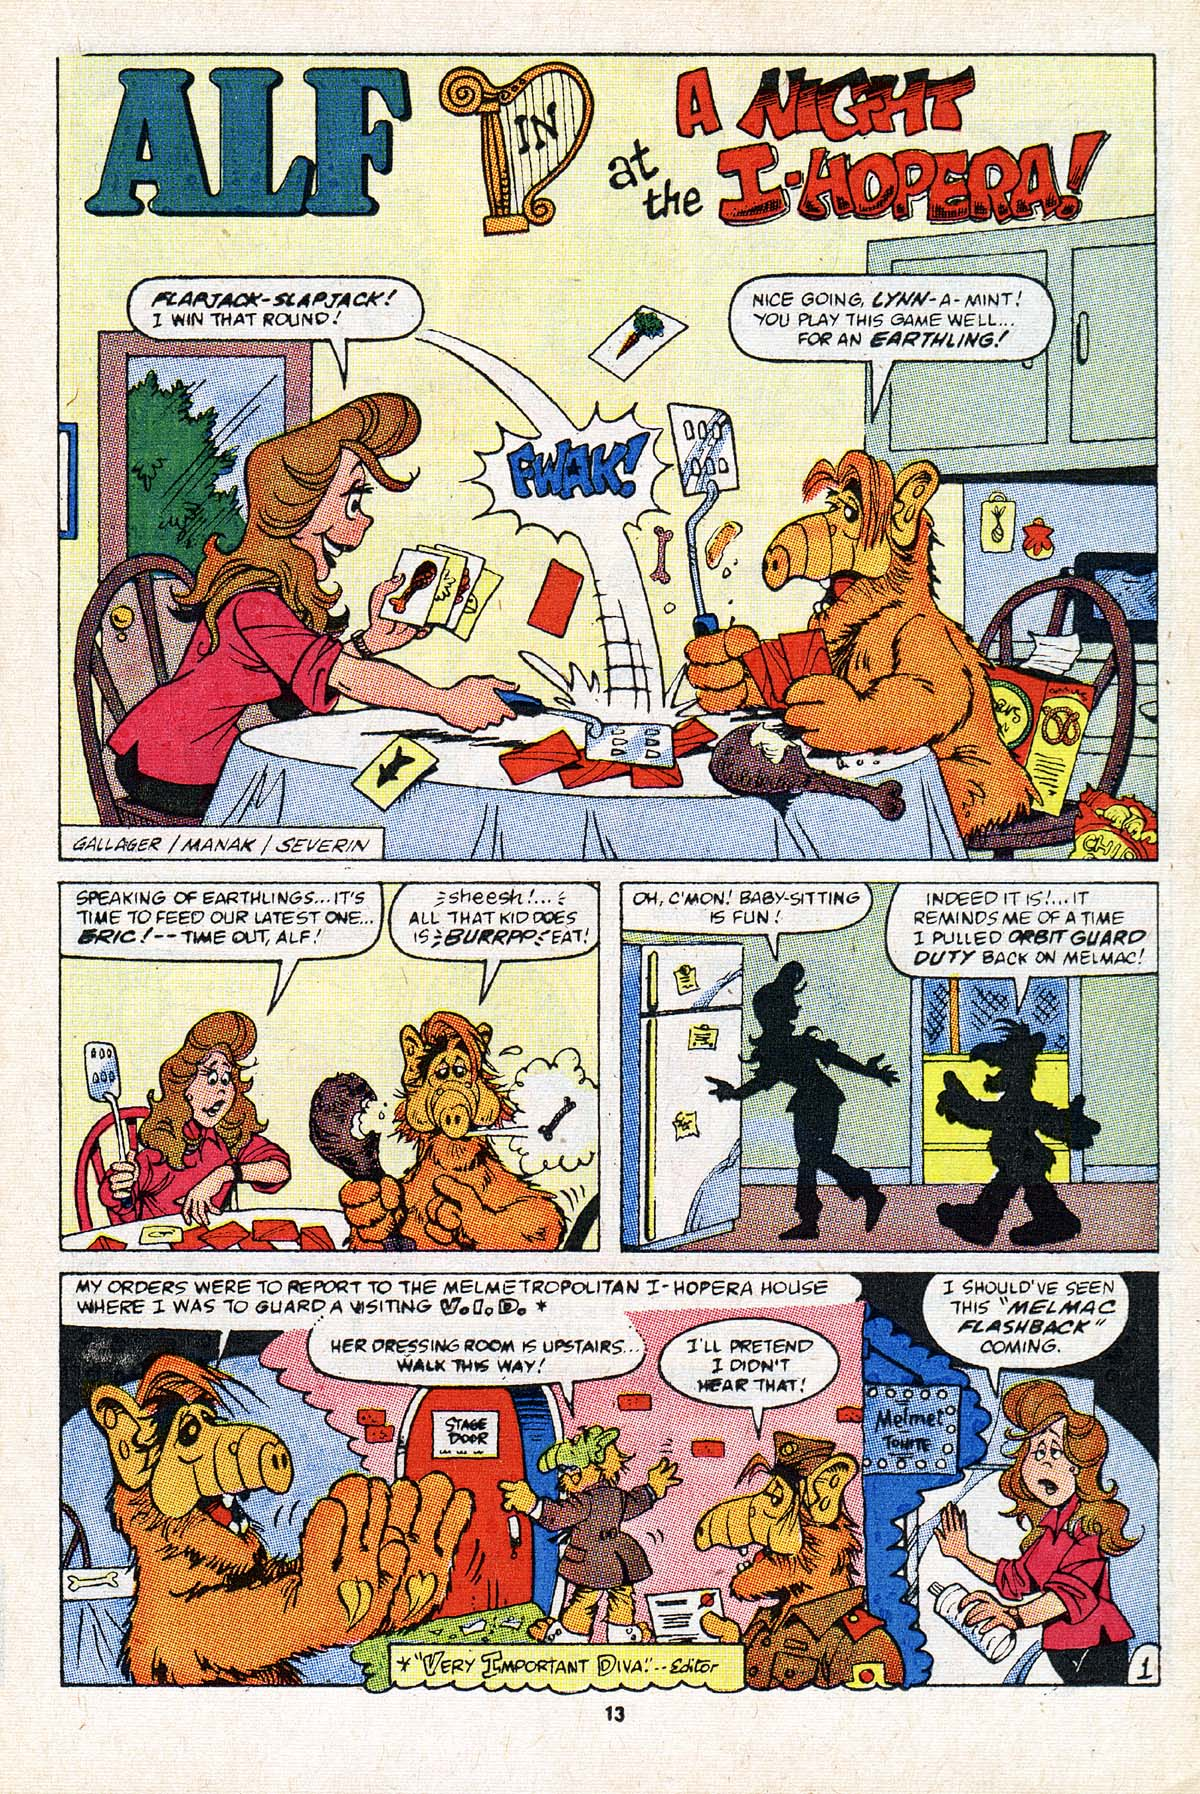 Read online ALF comic -  Issue #21 - 10